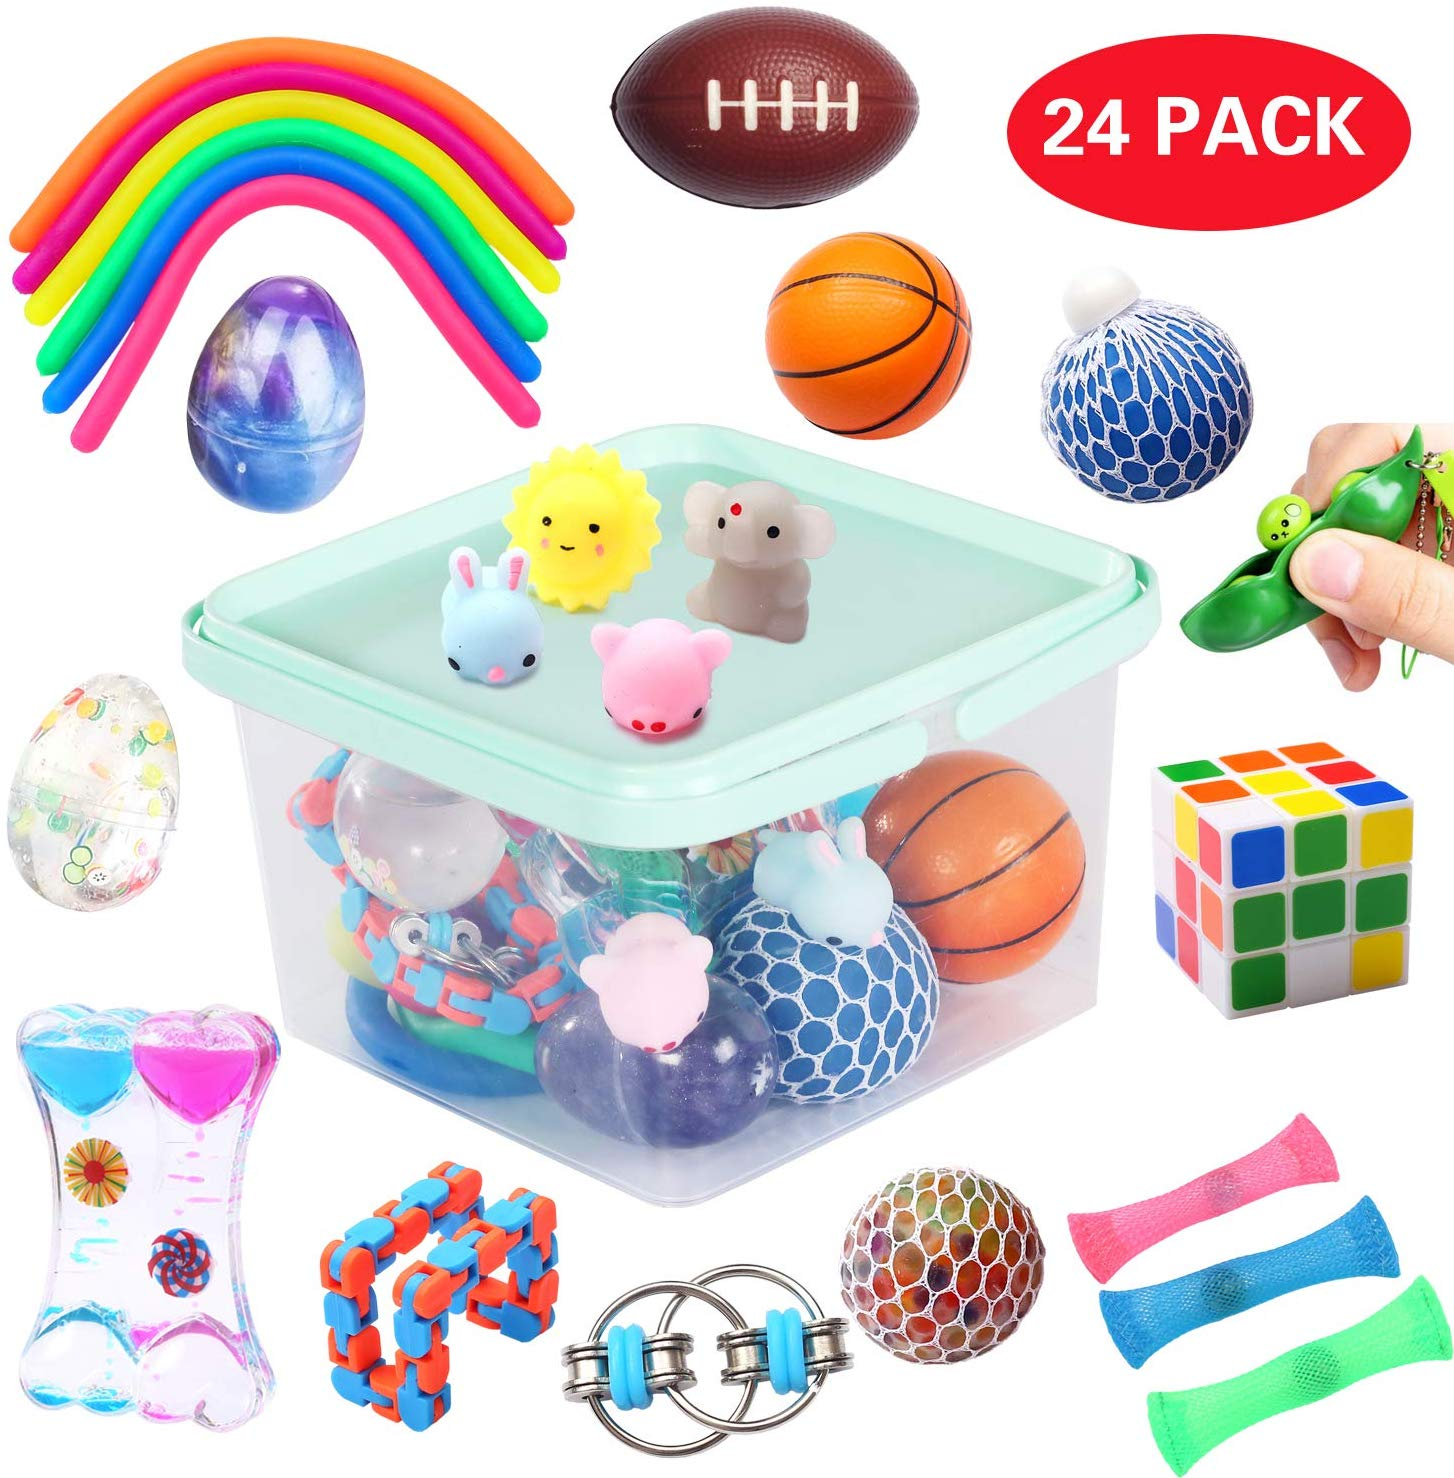 Satisfying Toy Stress Relief Toys Toys for ADHD Anxiety Toys Flow Rings Fun Things Cool Toys Mr Travel Toys Cool Things Pen- Flow Ring Fidget Toys ADHD Fidget Toys Cool Stuff Fun Stuff